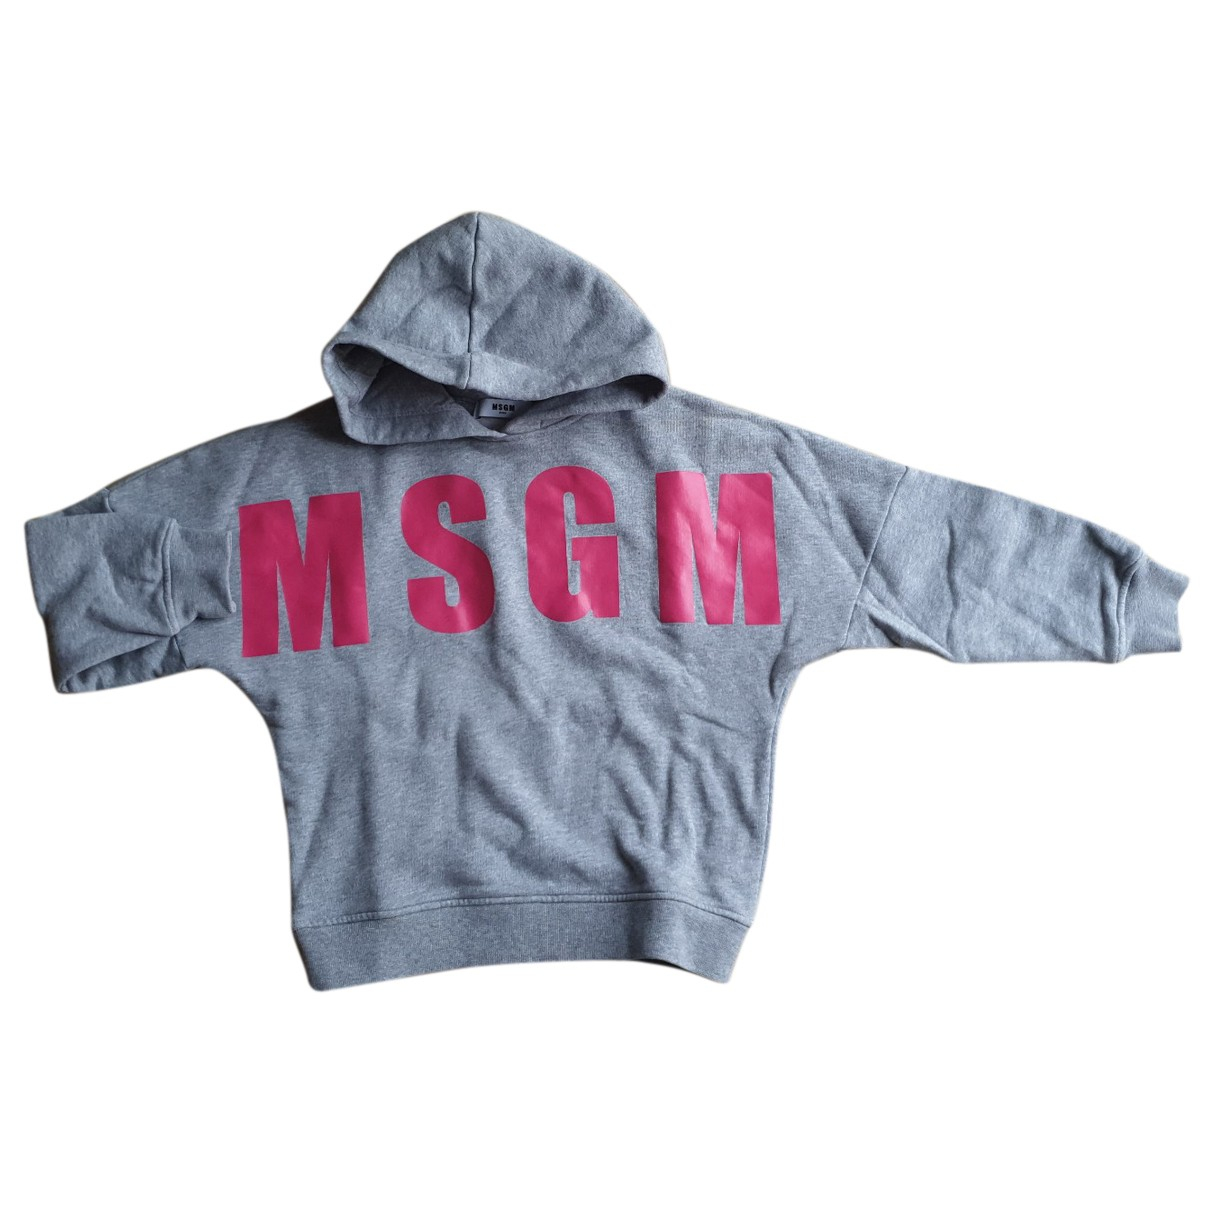 Msgm N Grey Cotton Knitwear for Kids 6 years - up to 114cm FR